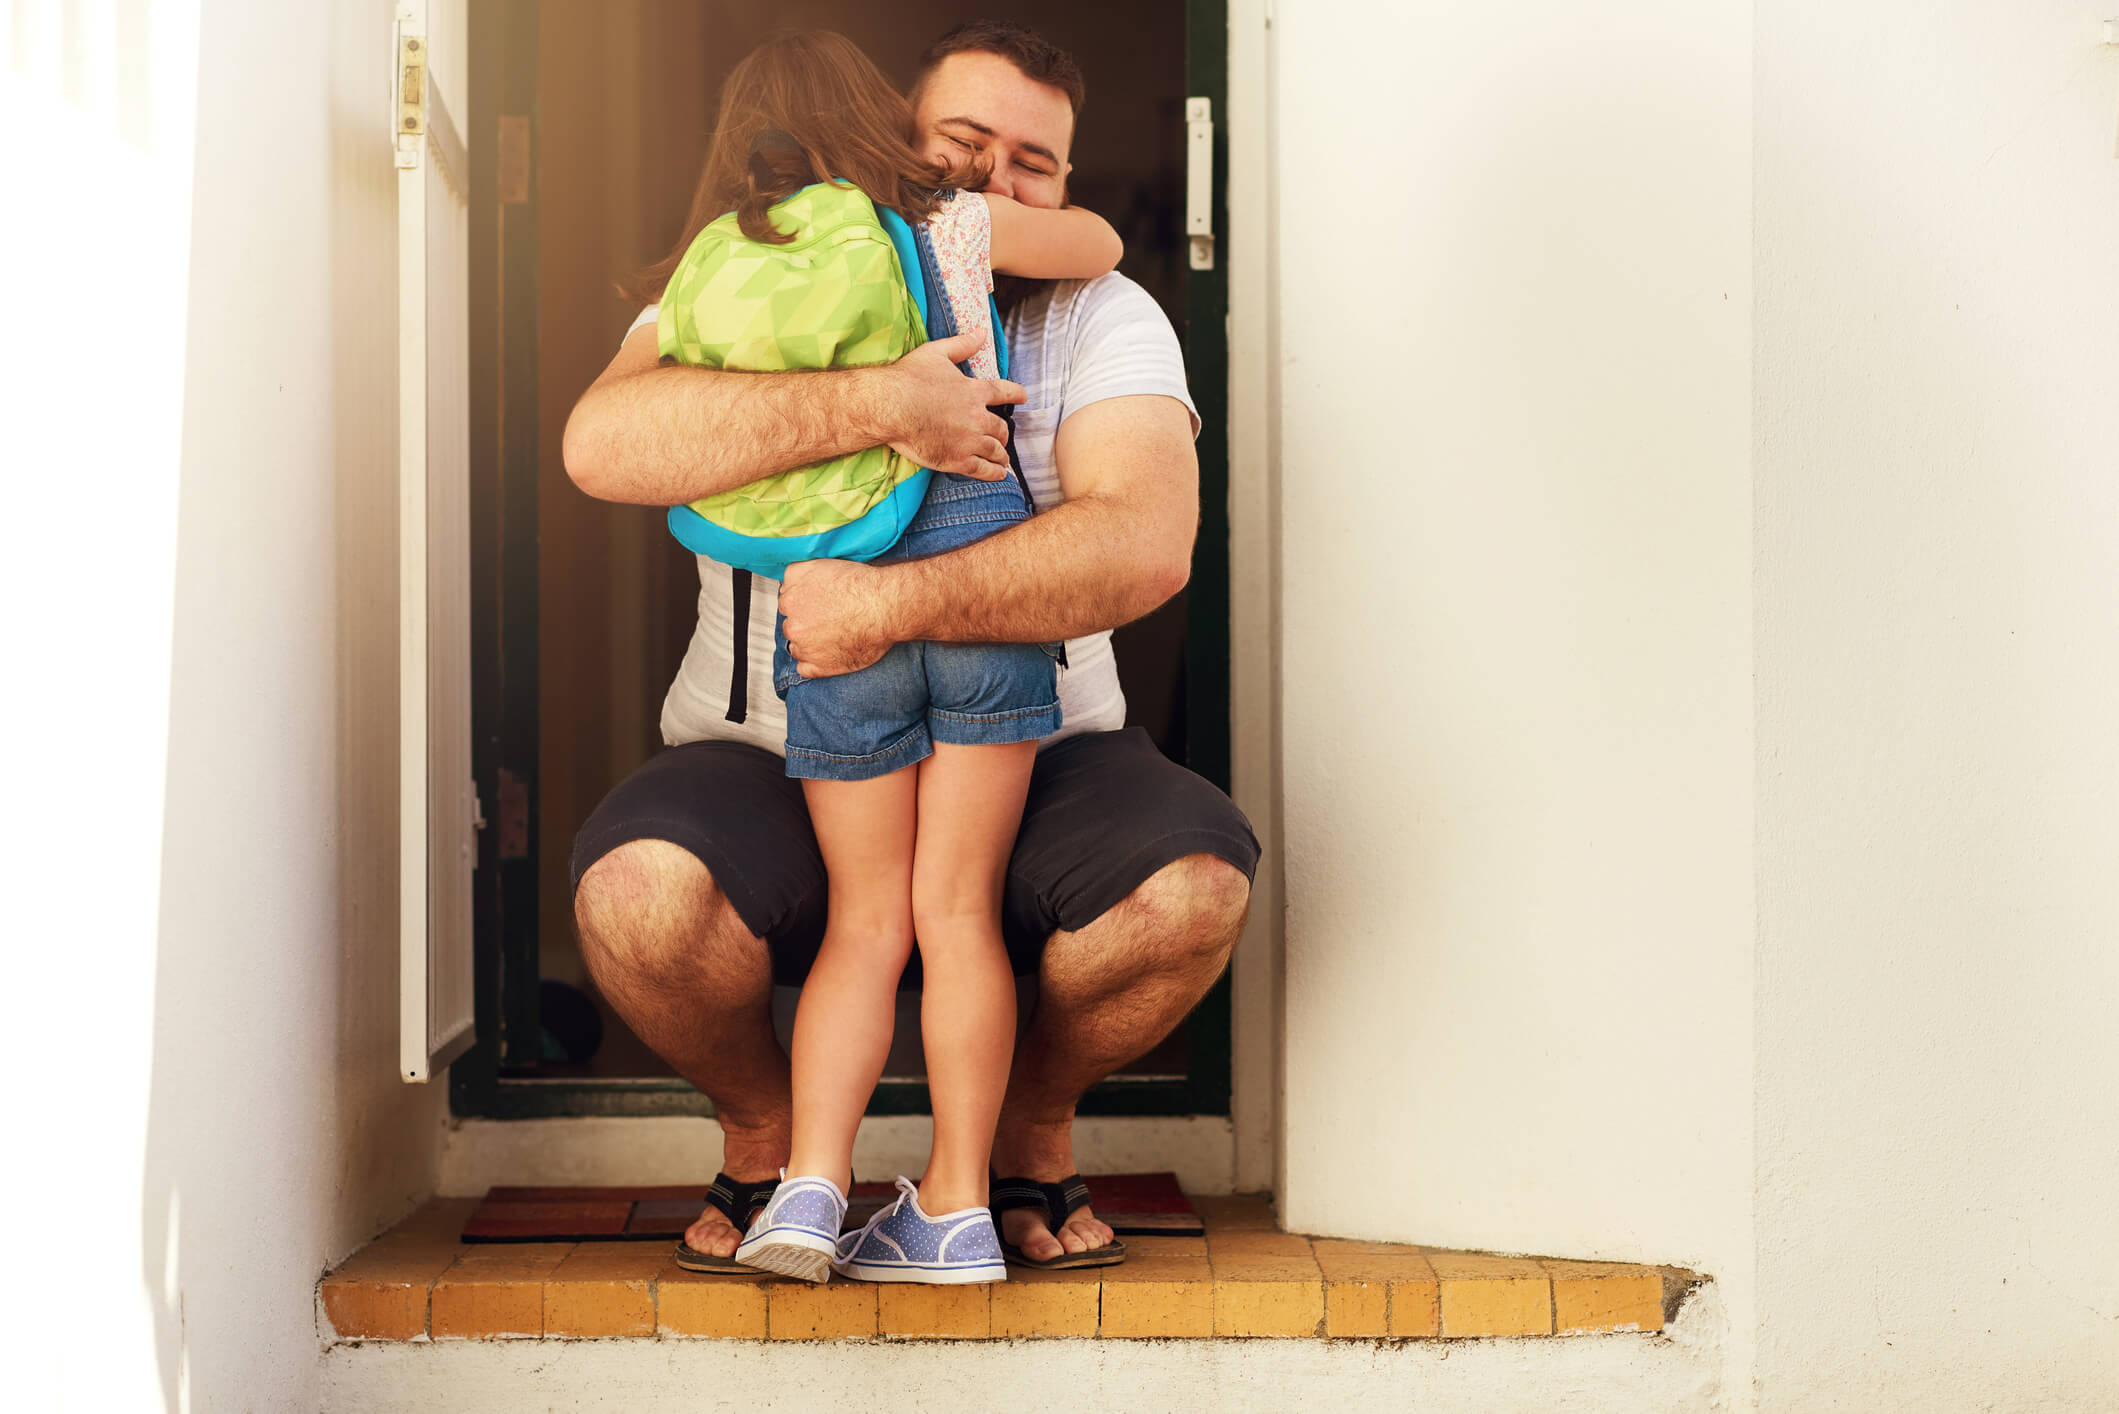 The Goodman Law Firm discusses whether or not the inability to co-parent is grounds for sole custody in Illinois.